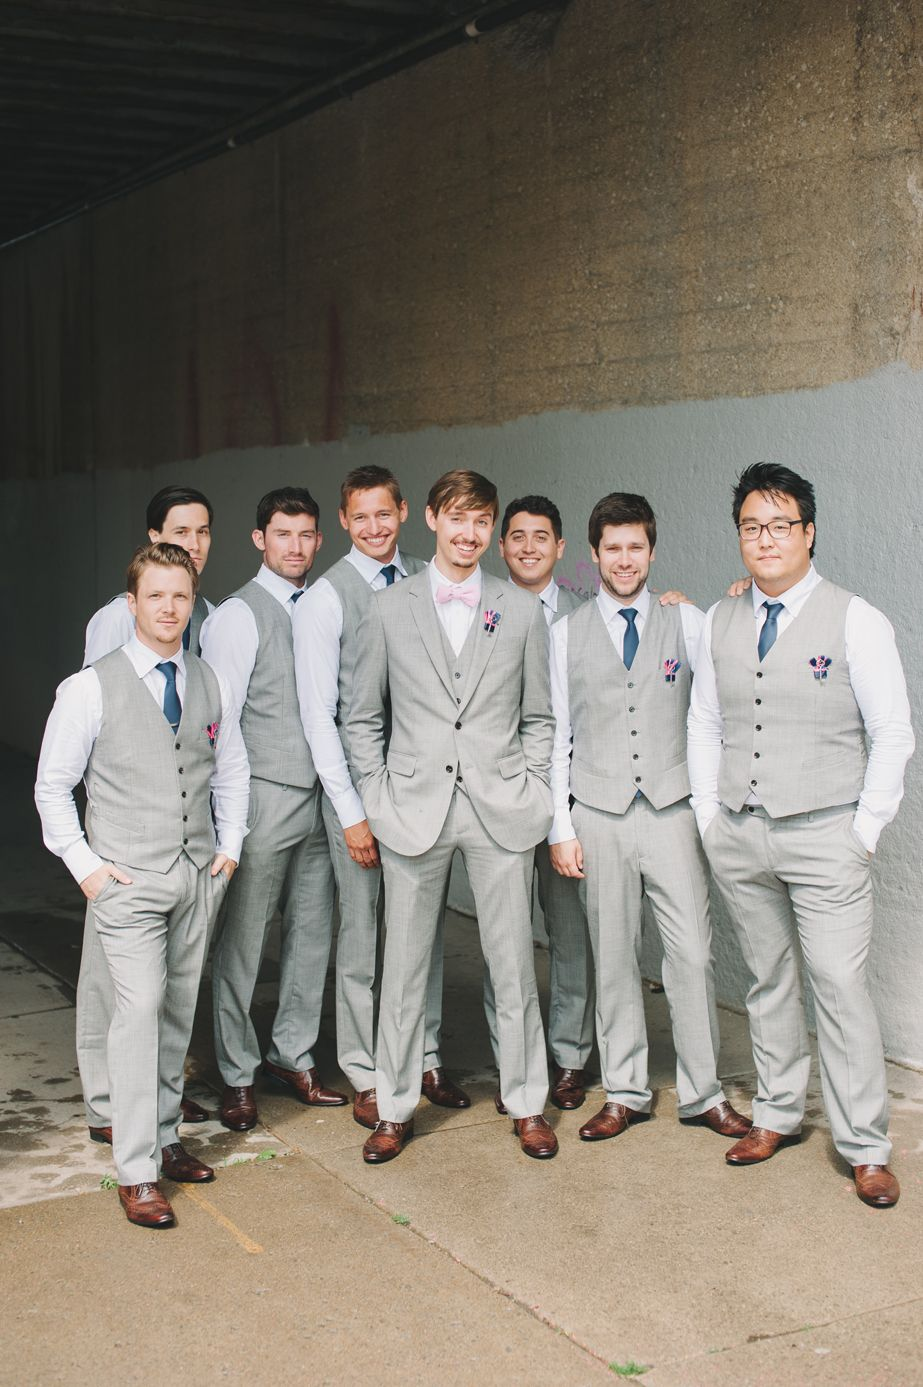 2f60a2866a92 All were in custom made suits from Indochino. The groomsmen had a two piece  suit with a navy tie, and the groom had a three piece suit with a pink ...